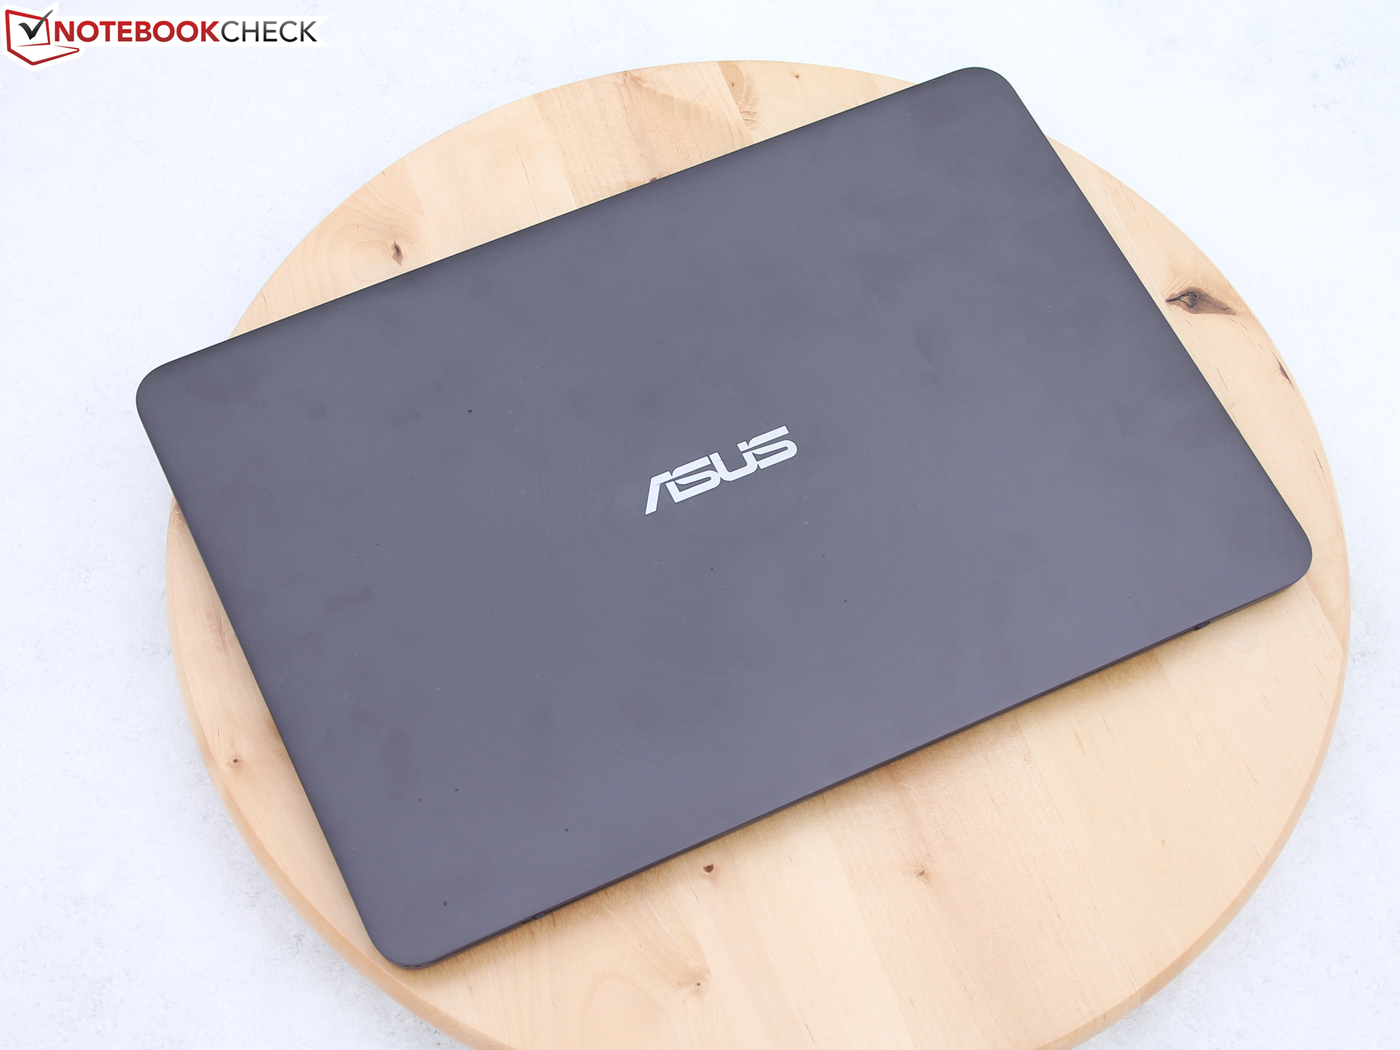 Asus Zenbook Ux305fa Subnotebook Review Notebookcheck